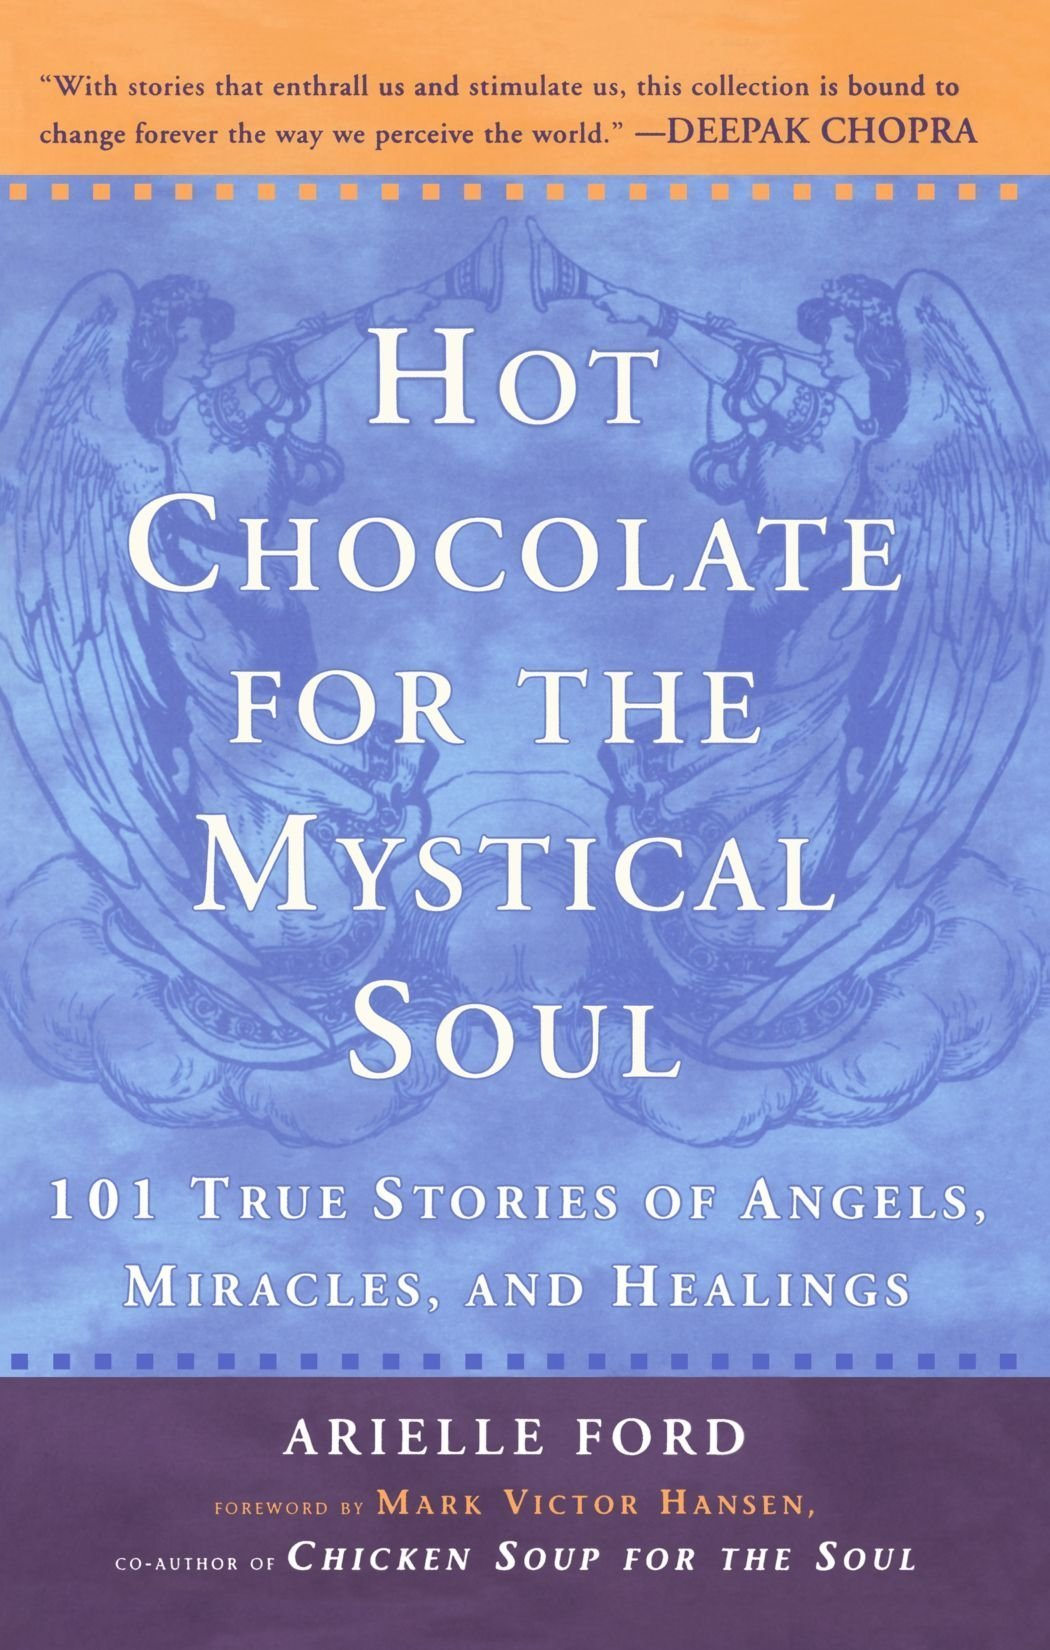 hot-chocolate-for-the-mystical-soul-101-true-stories-of-angels-miracles-and-healings